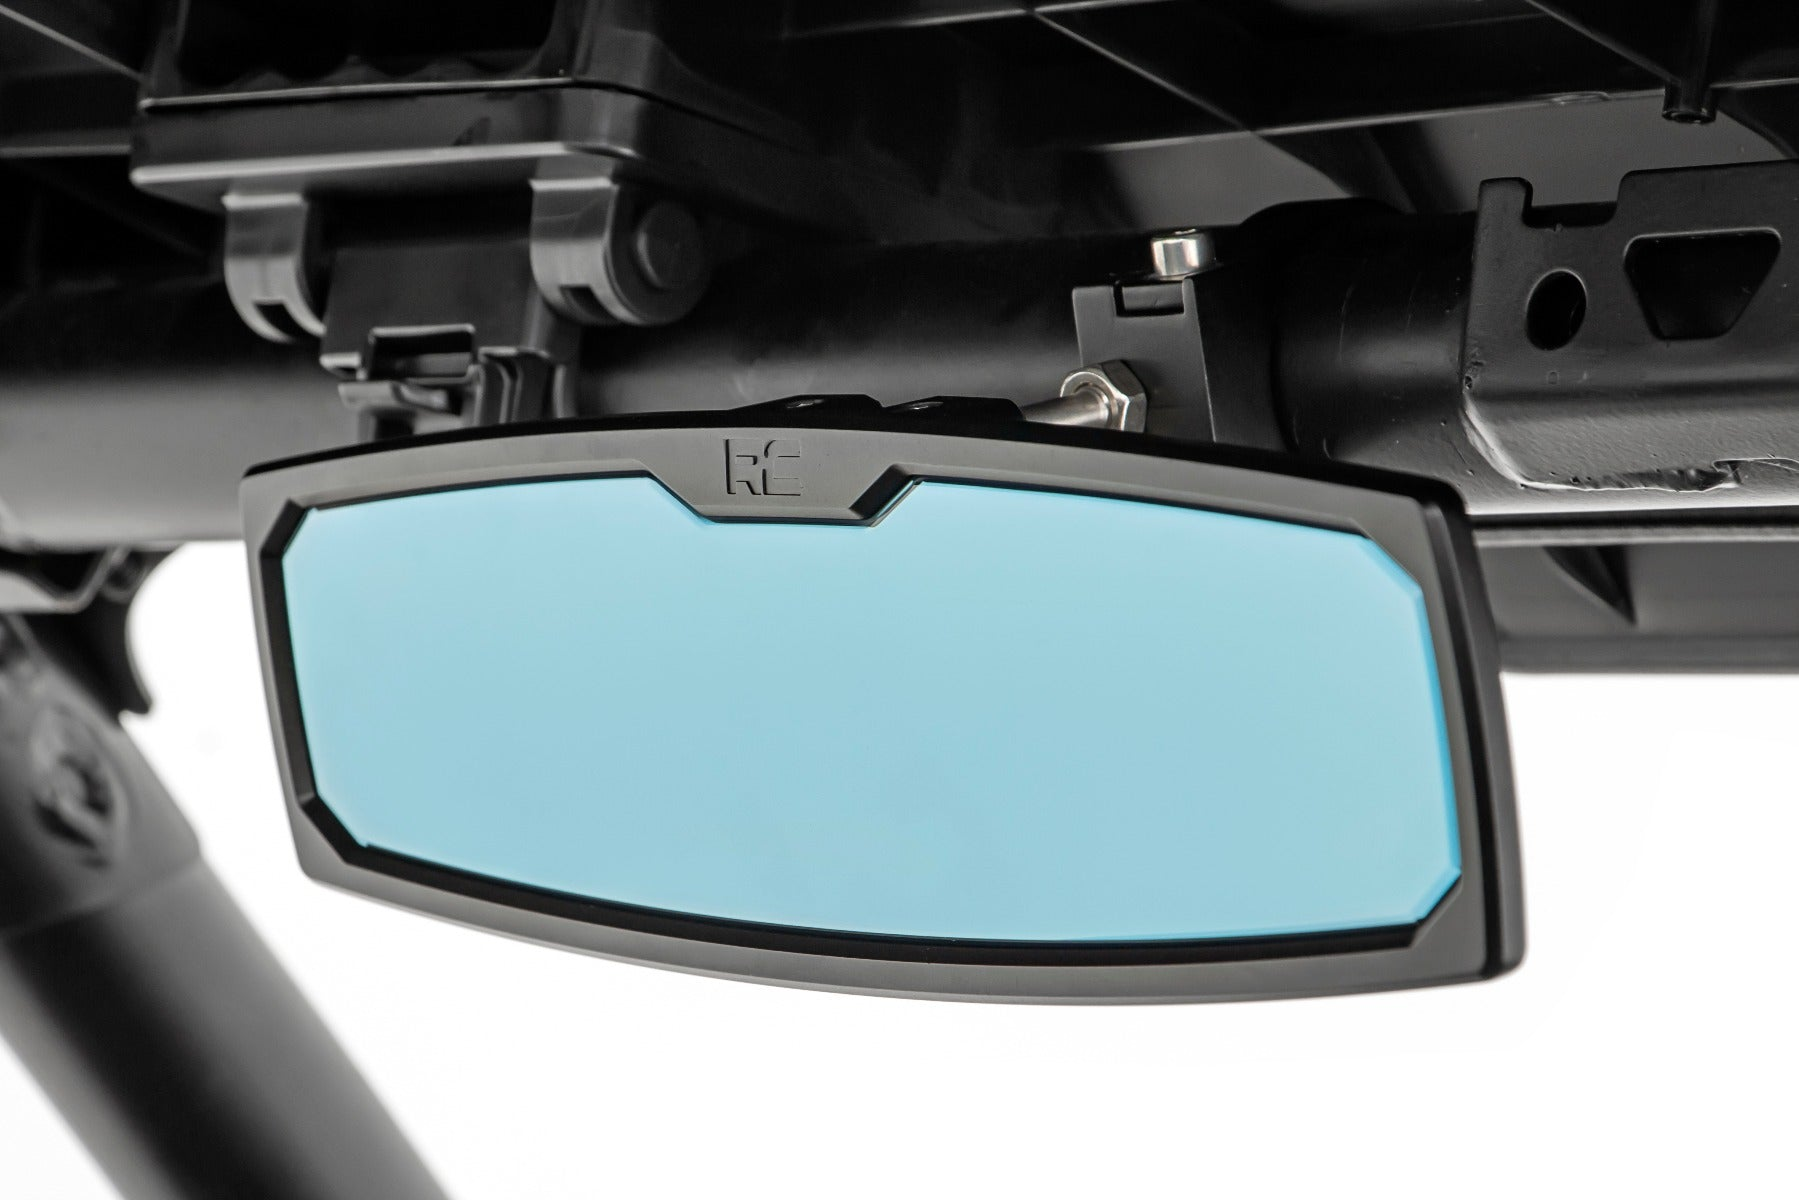 UTV Aluminum Rear View Mirror  (1.75 - 2.0in | Universal)